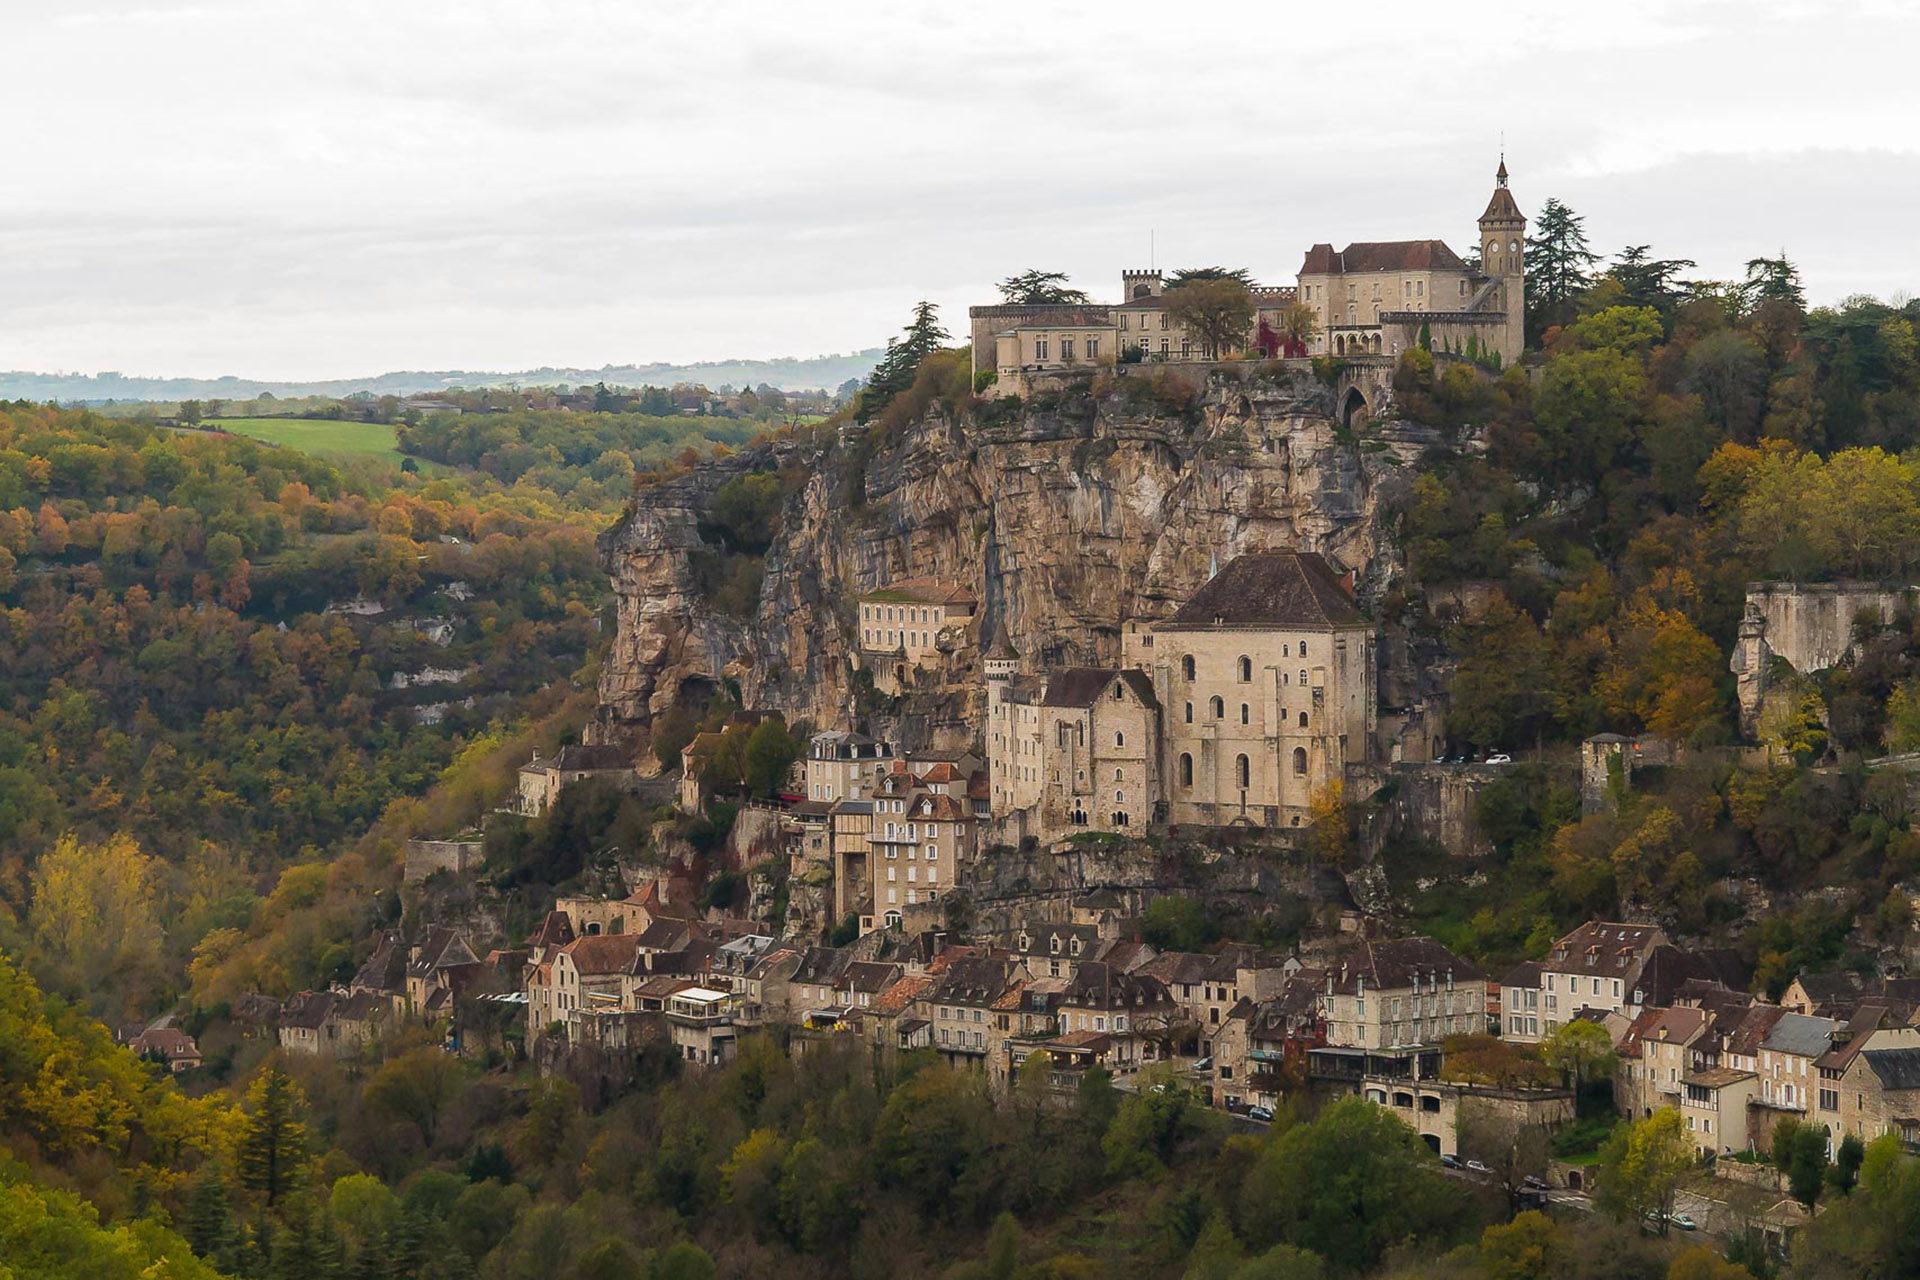 Alain Freiholz Photographie, Paysage Rocamadour - France